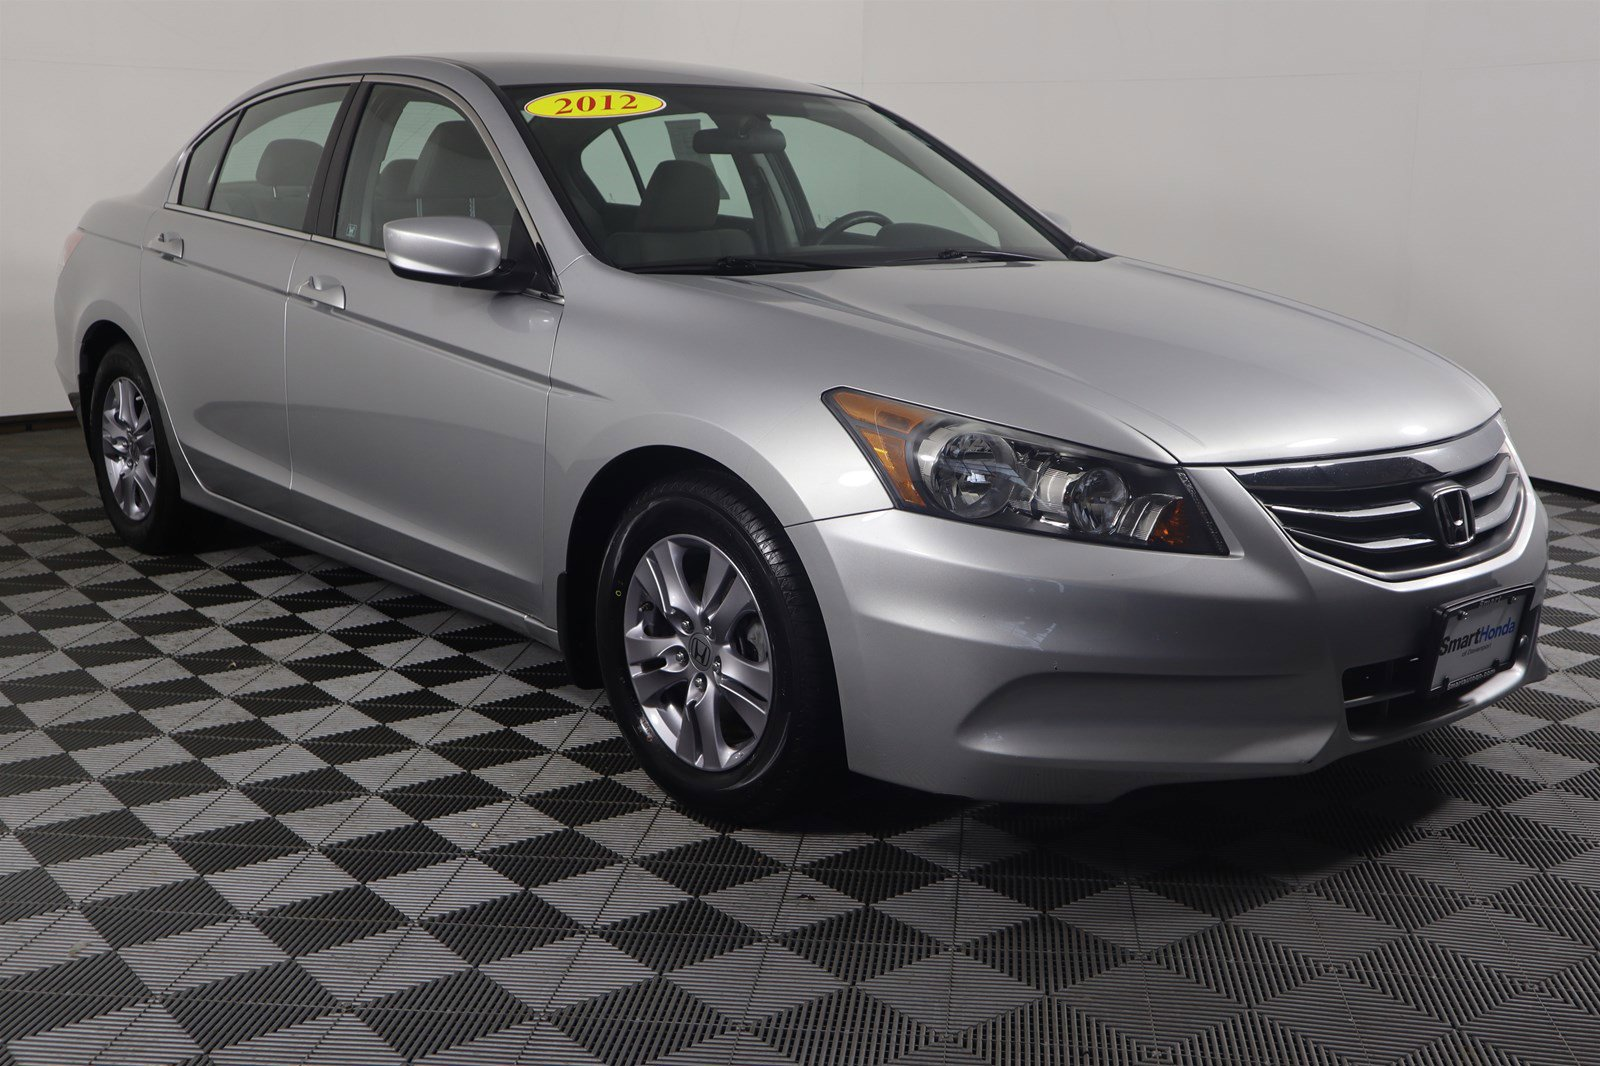 Pre-Owned 2012 Honda Accord Sdn LX Premium